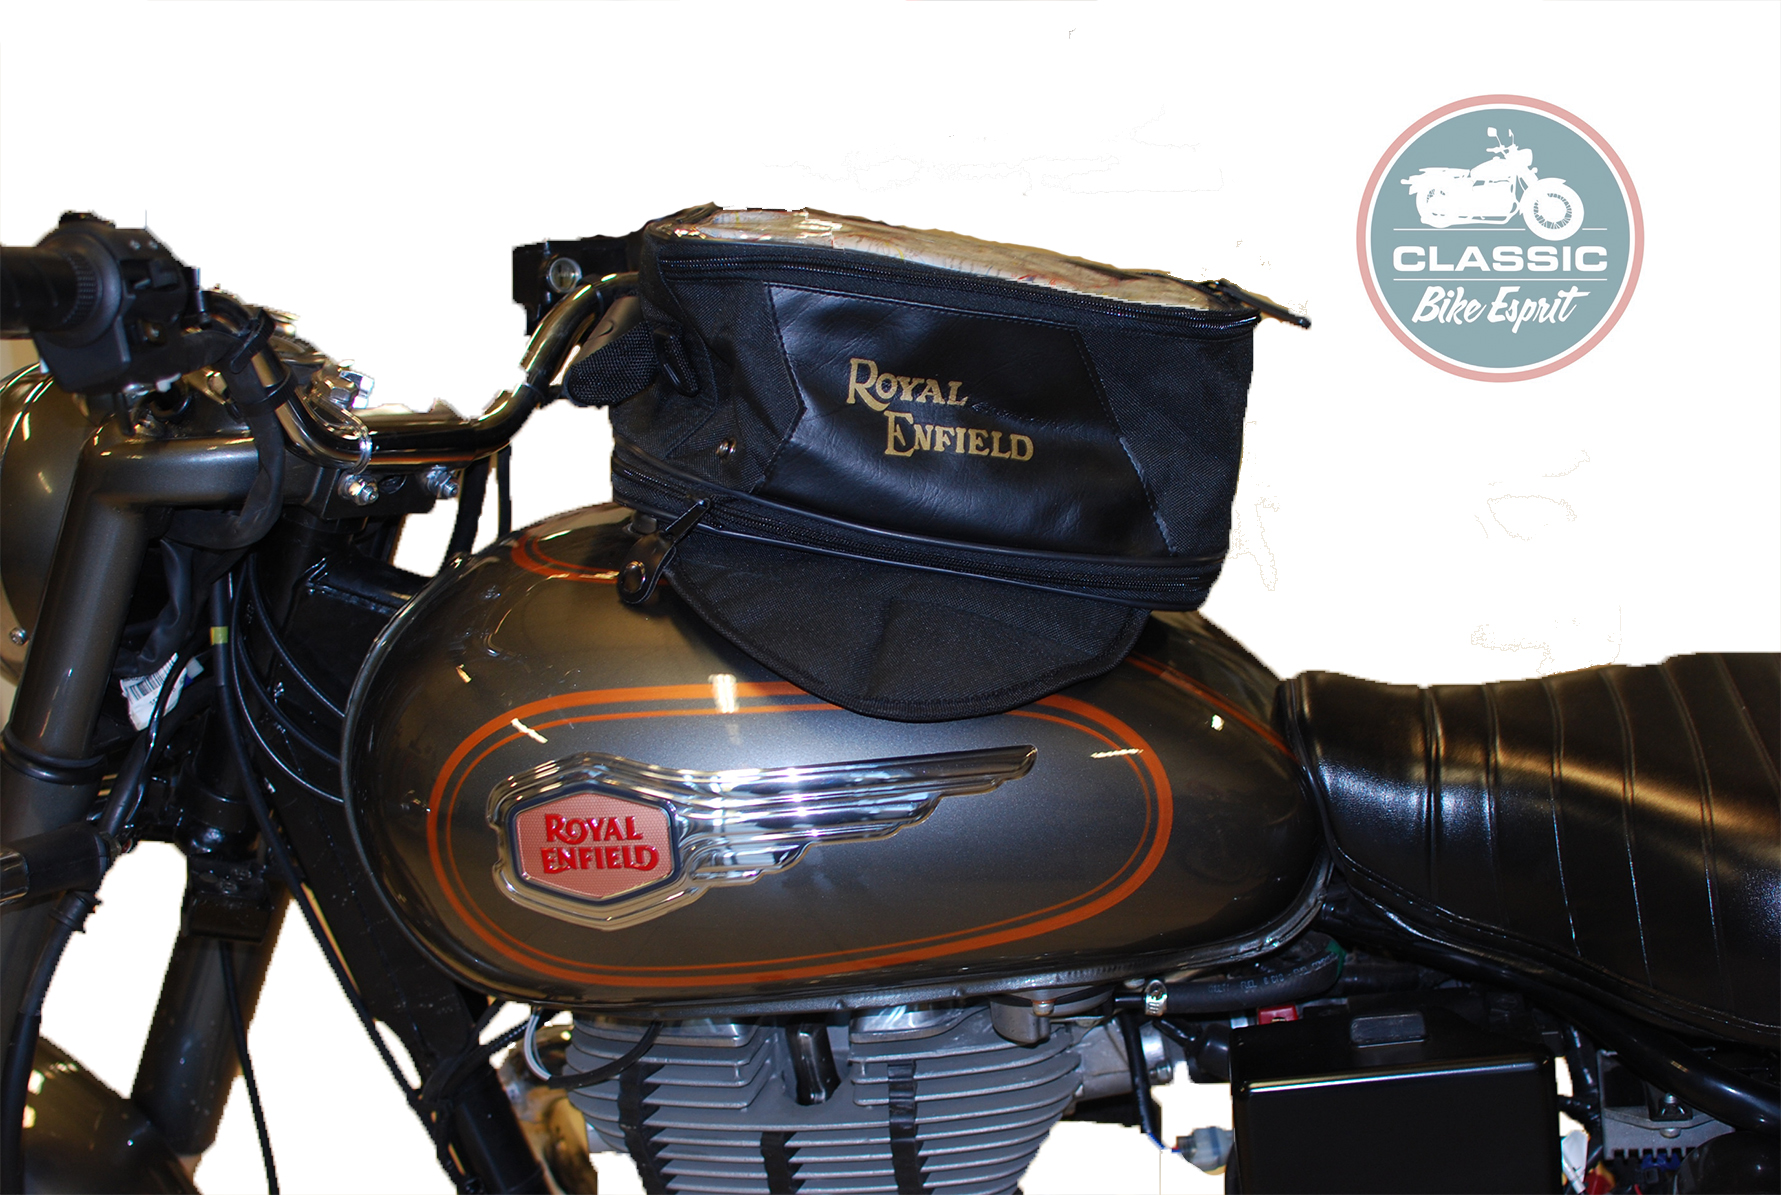 sac magn tique royal enfield classic bike esprit. Black Bedroom Furniture Sets. Home Design Ideas